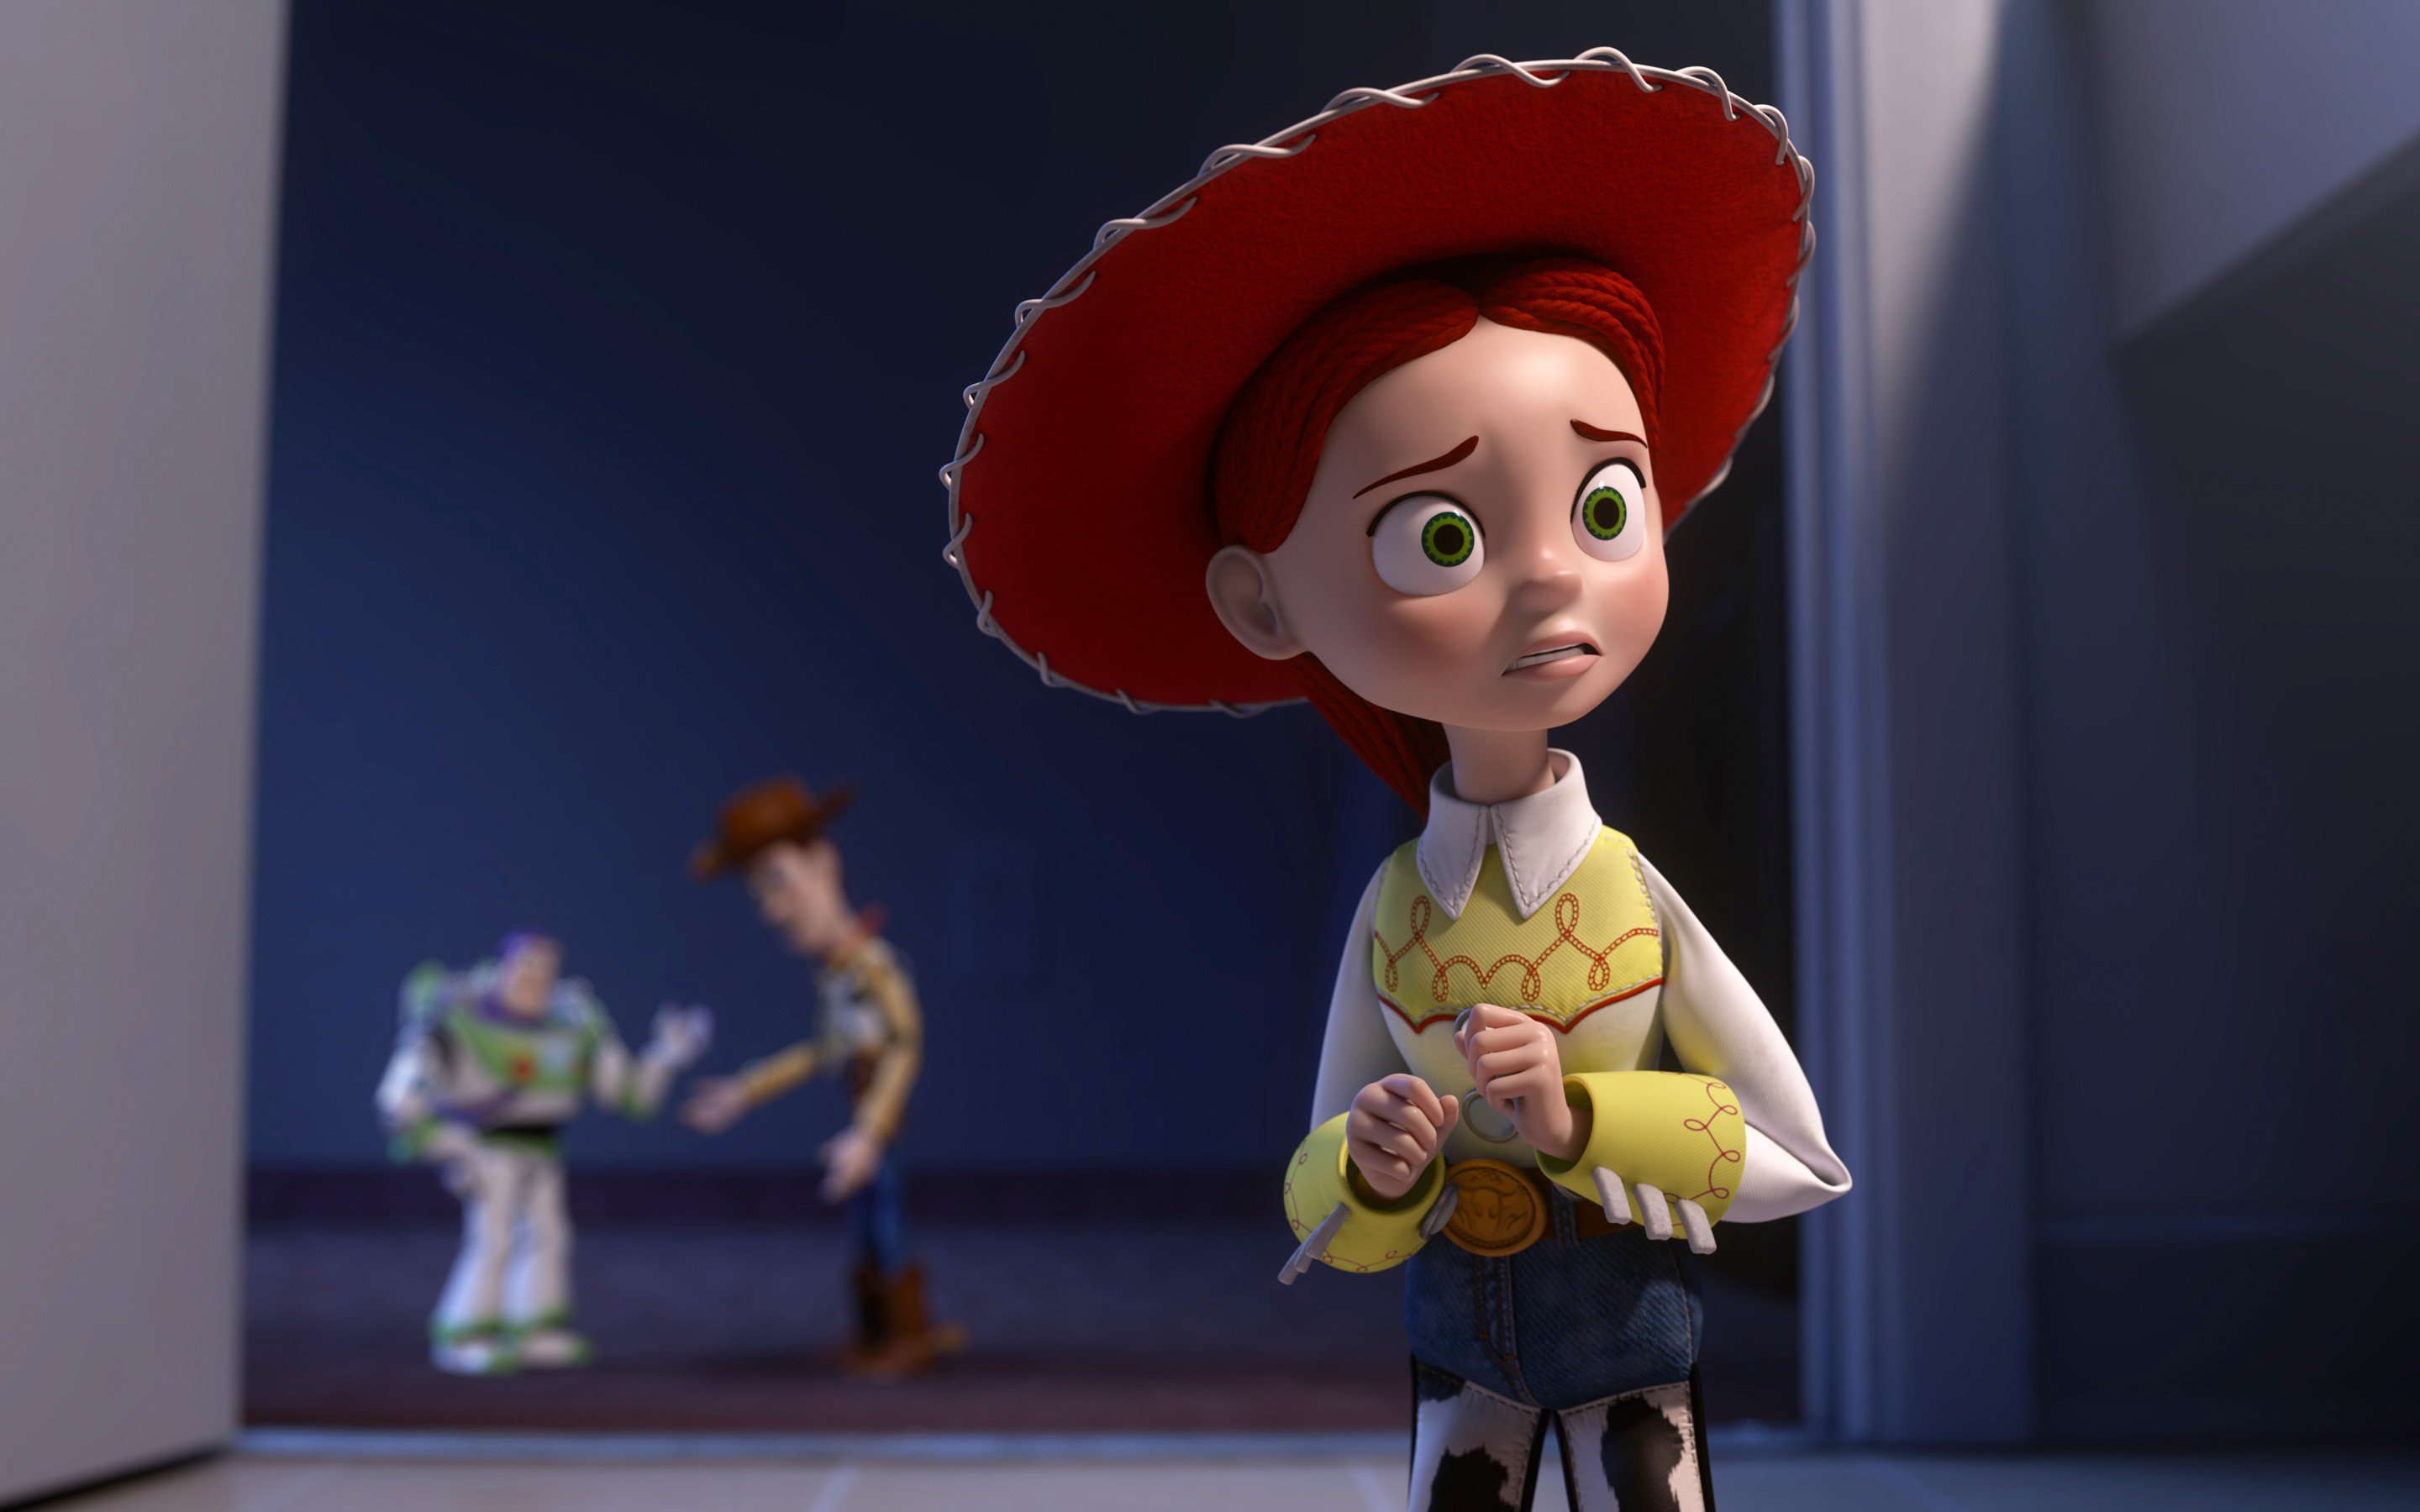 Cute Pizza Wallpaper Toy Story Movie Hd Movies 4k Wallpapers Images